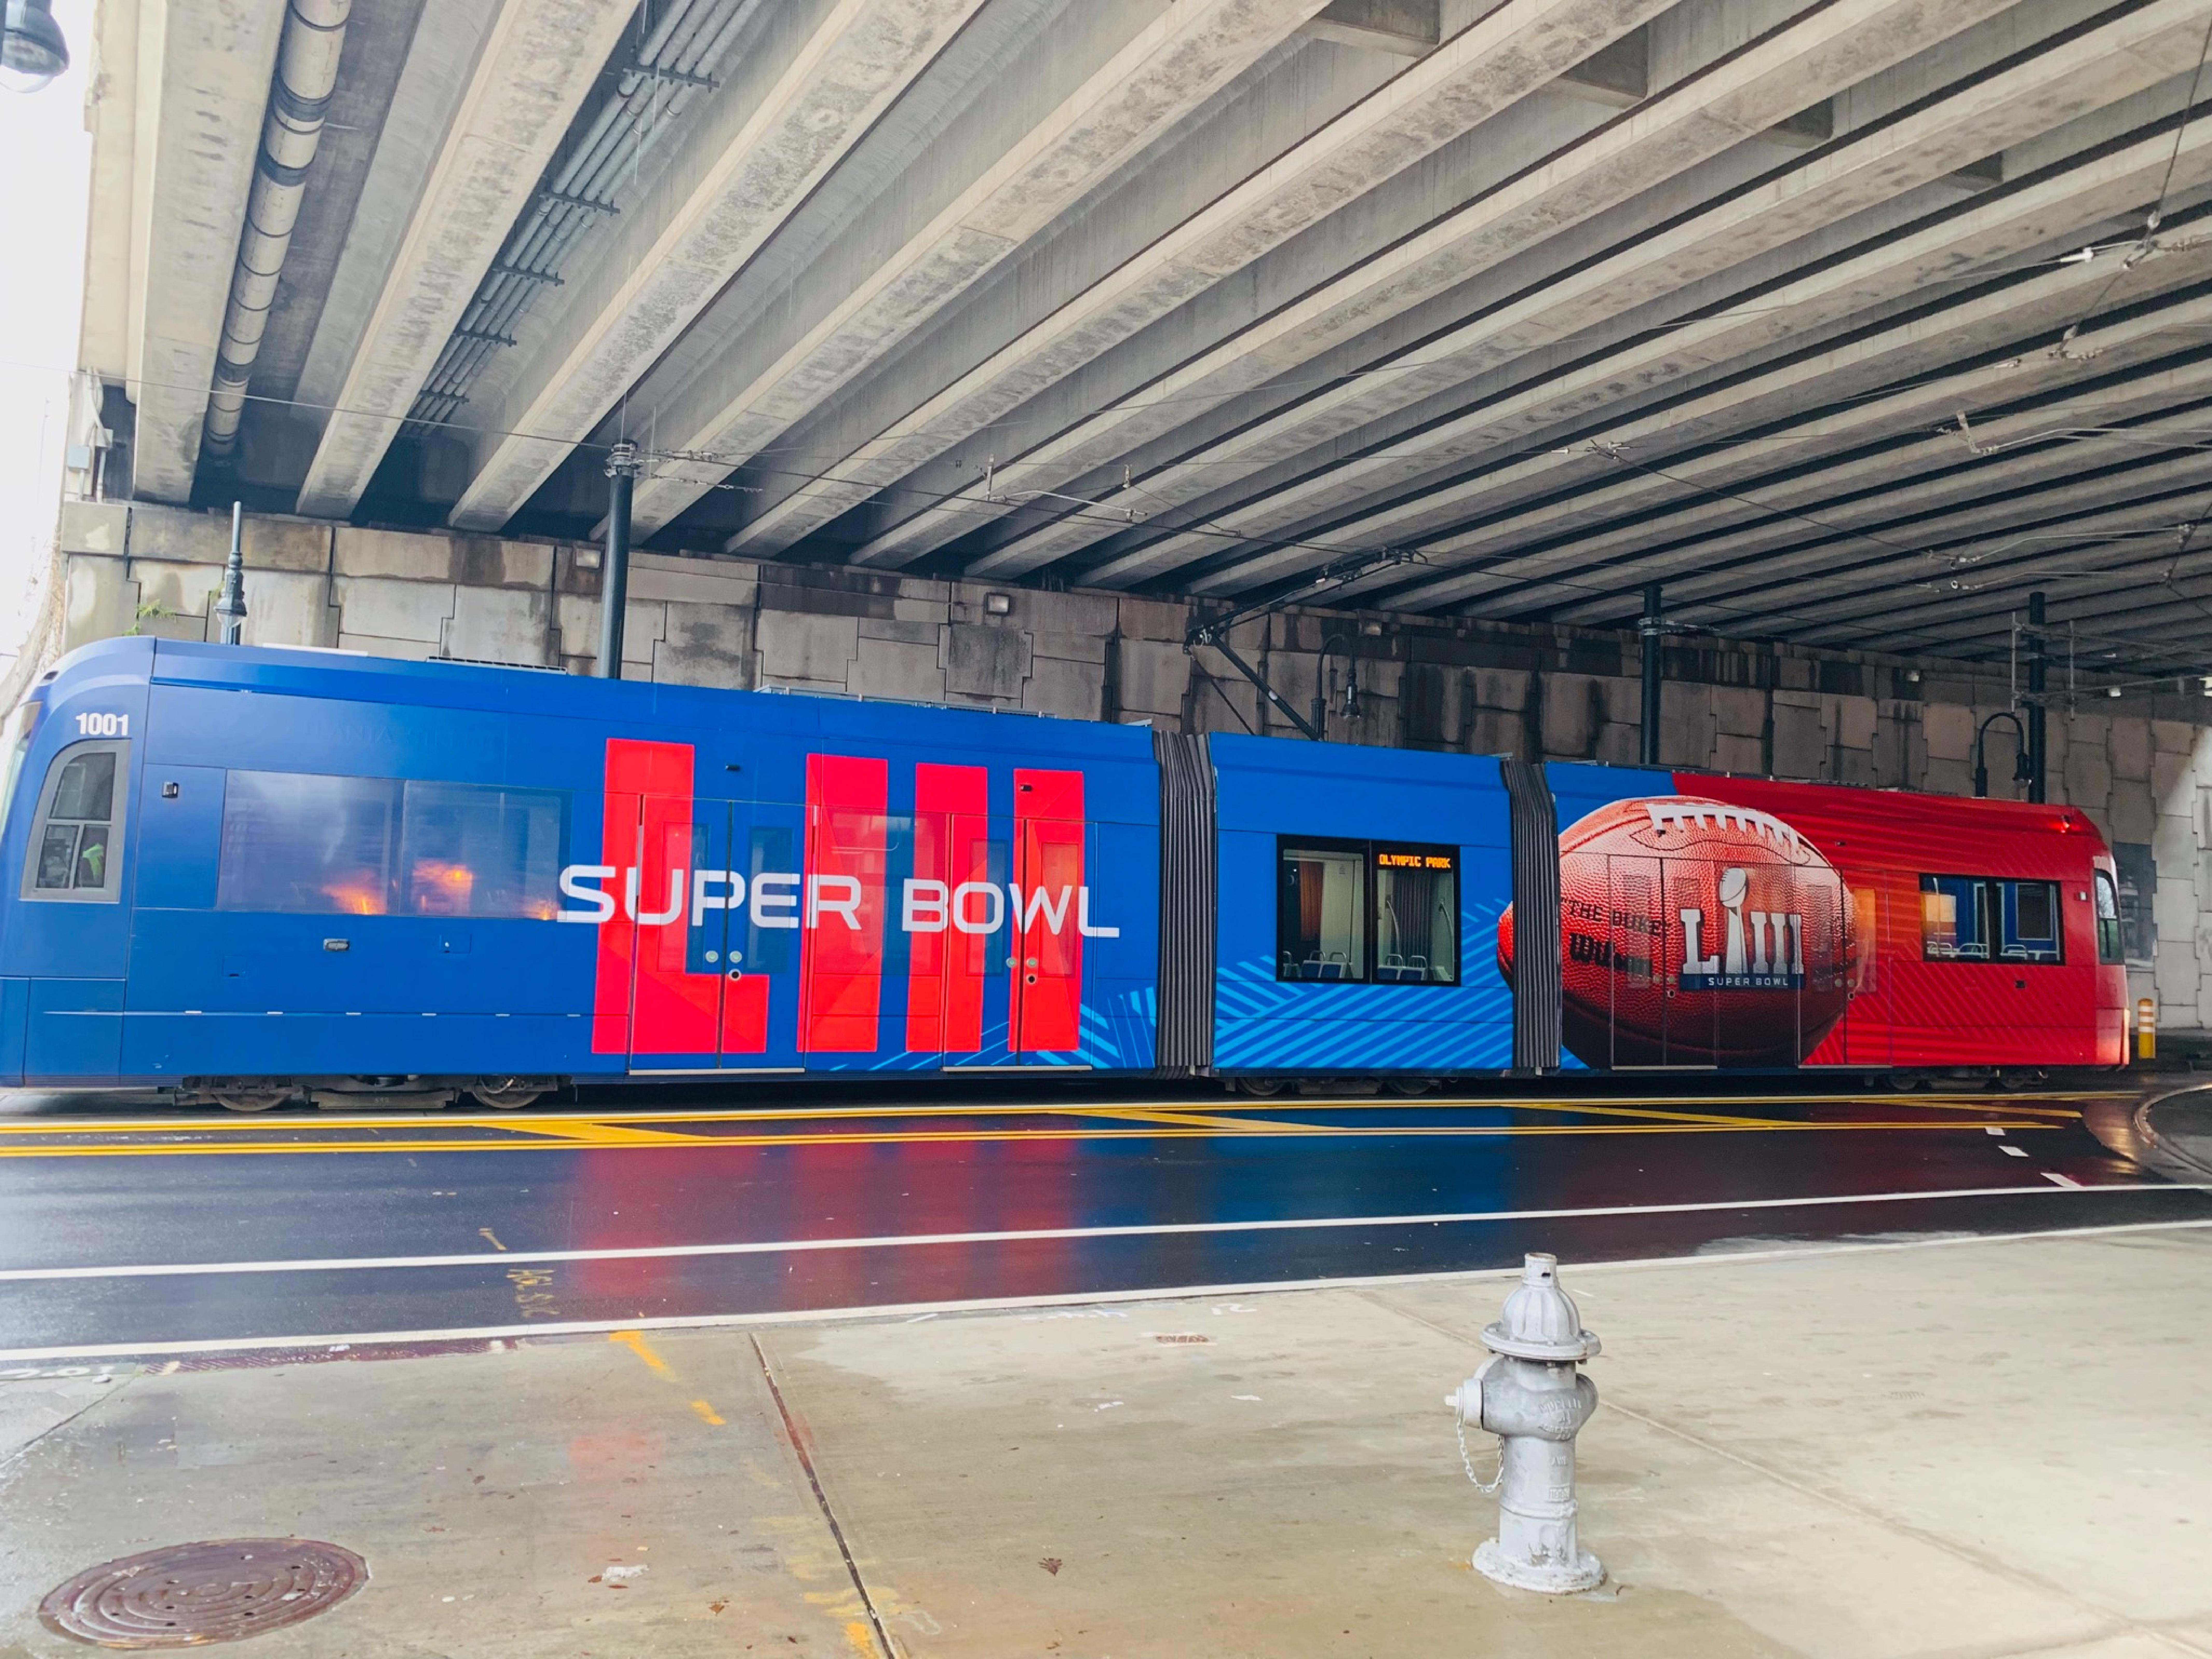 A picture of the streetcar covered in a Super Bowl wrap